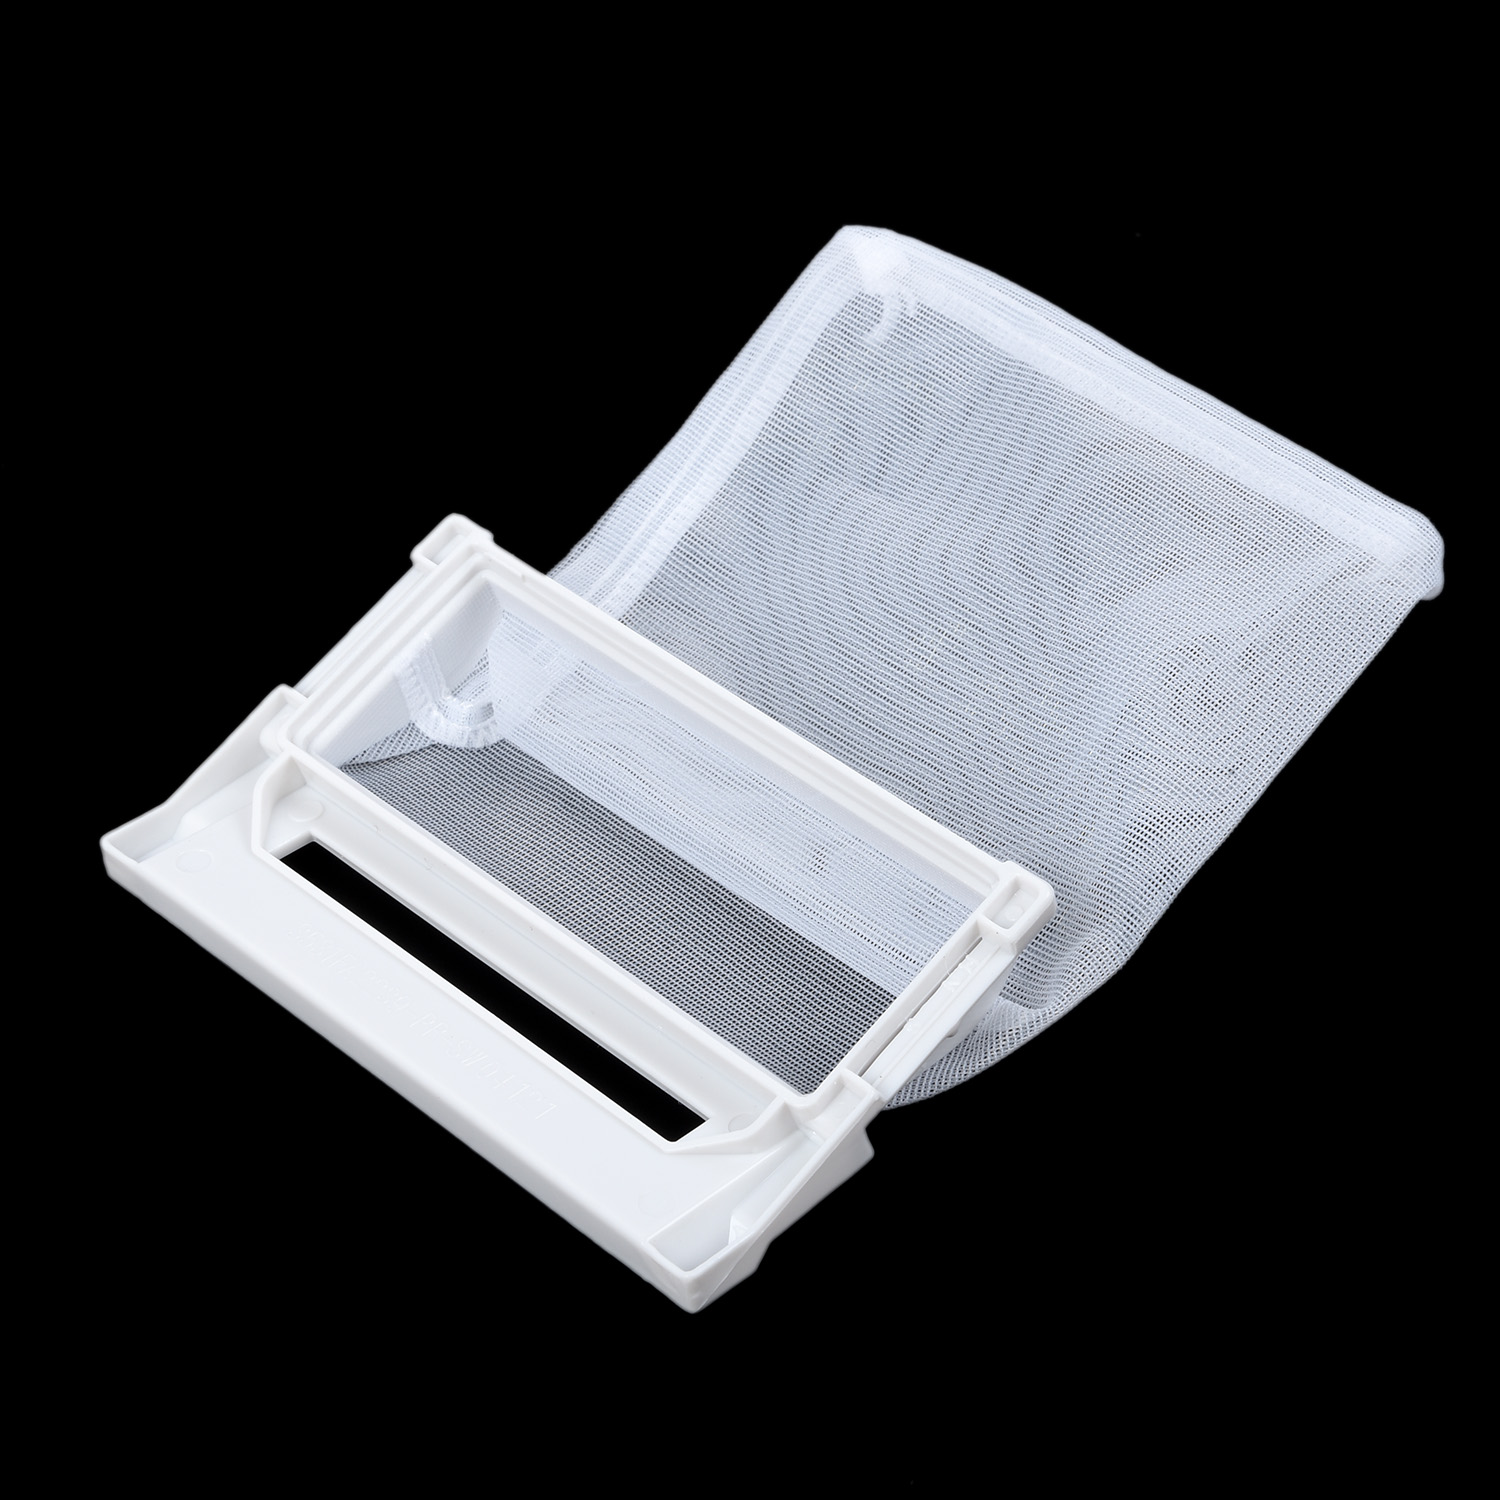 Washing Machine Laundry Lint Filter Bag 100x60mm For LG Hair Catcher Mesh Filter Home Appliances Accessories